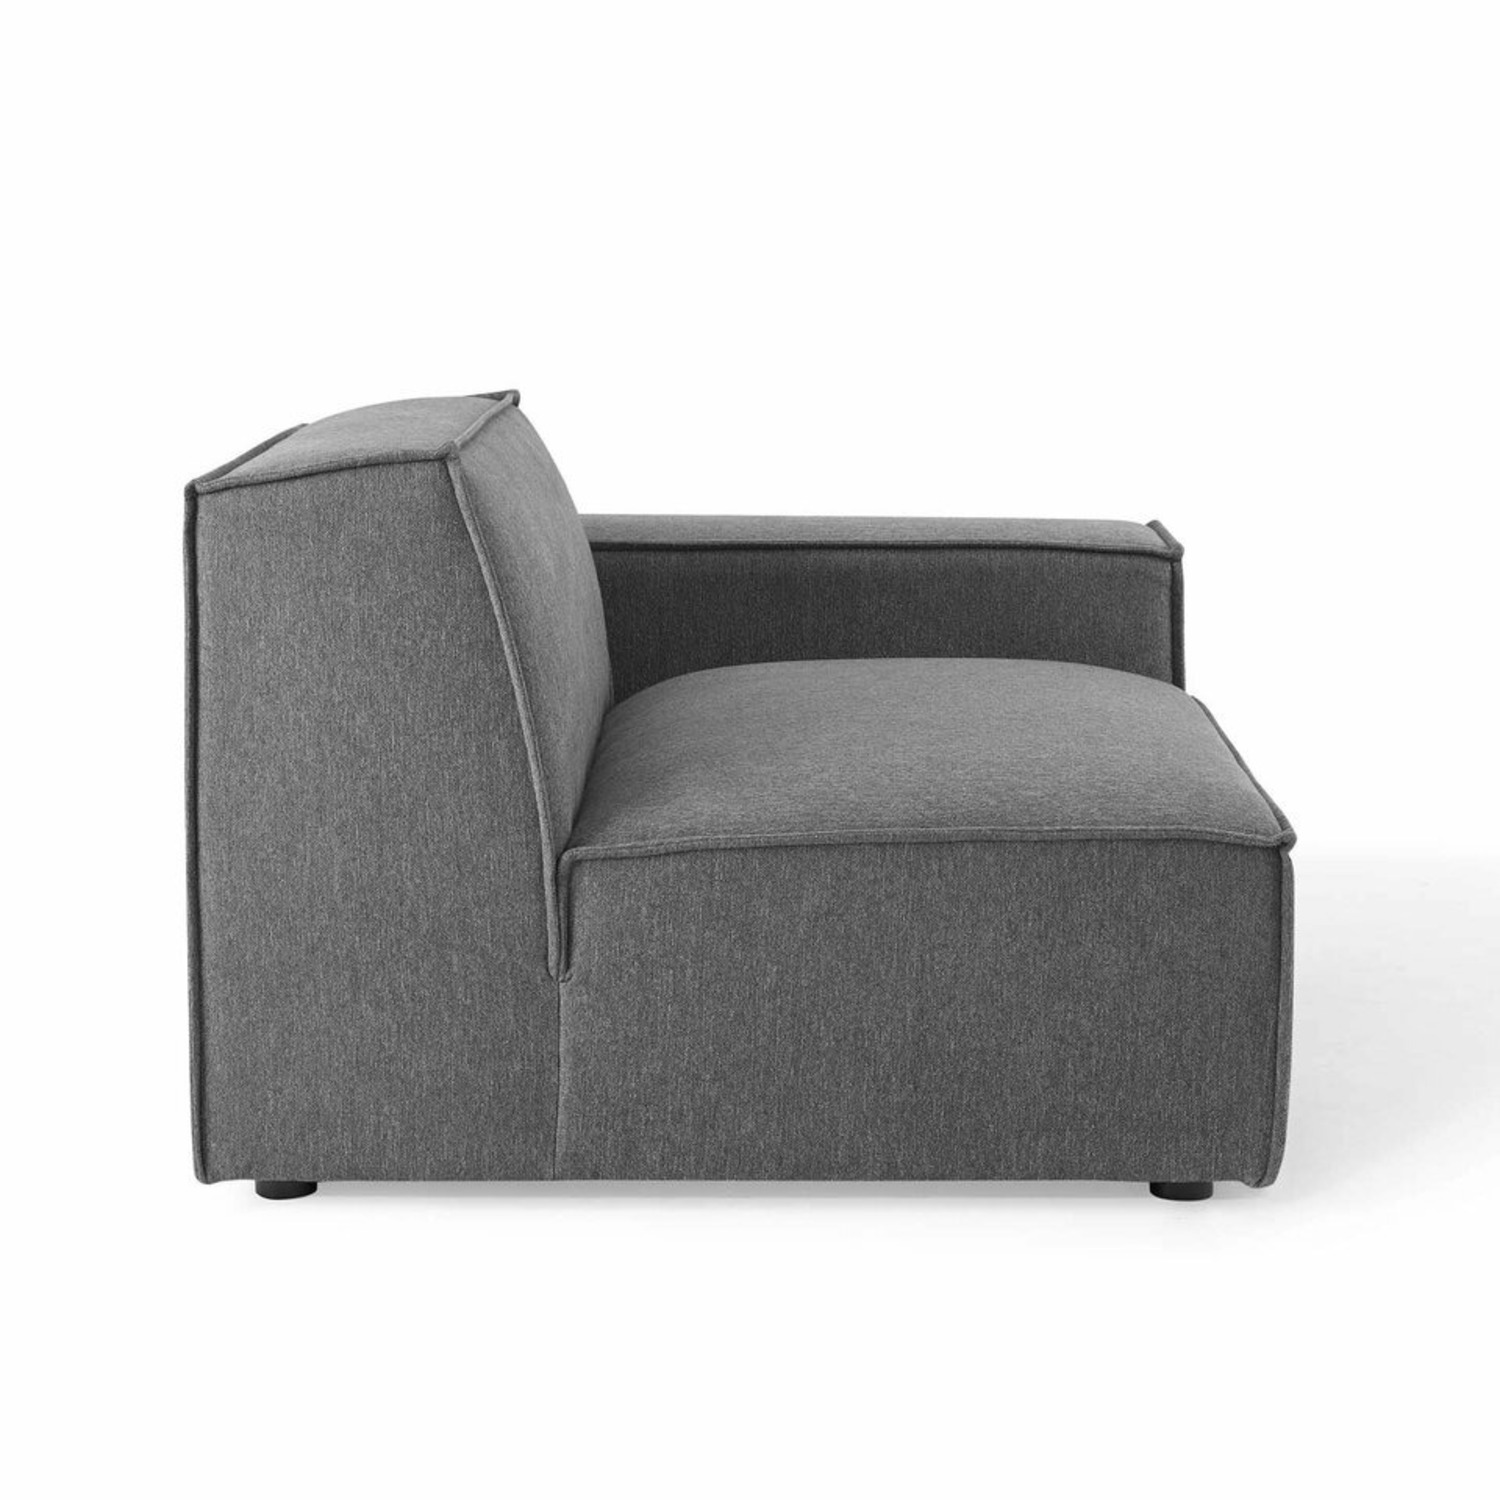 3-Piece Sectional Sofa In Charcoal Upholstery - image-3